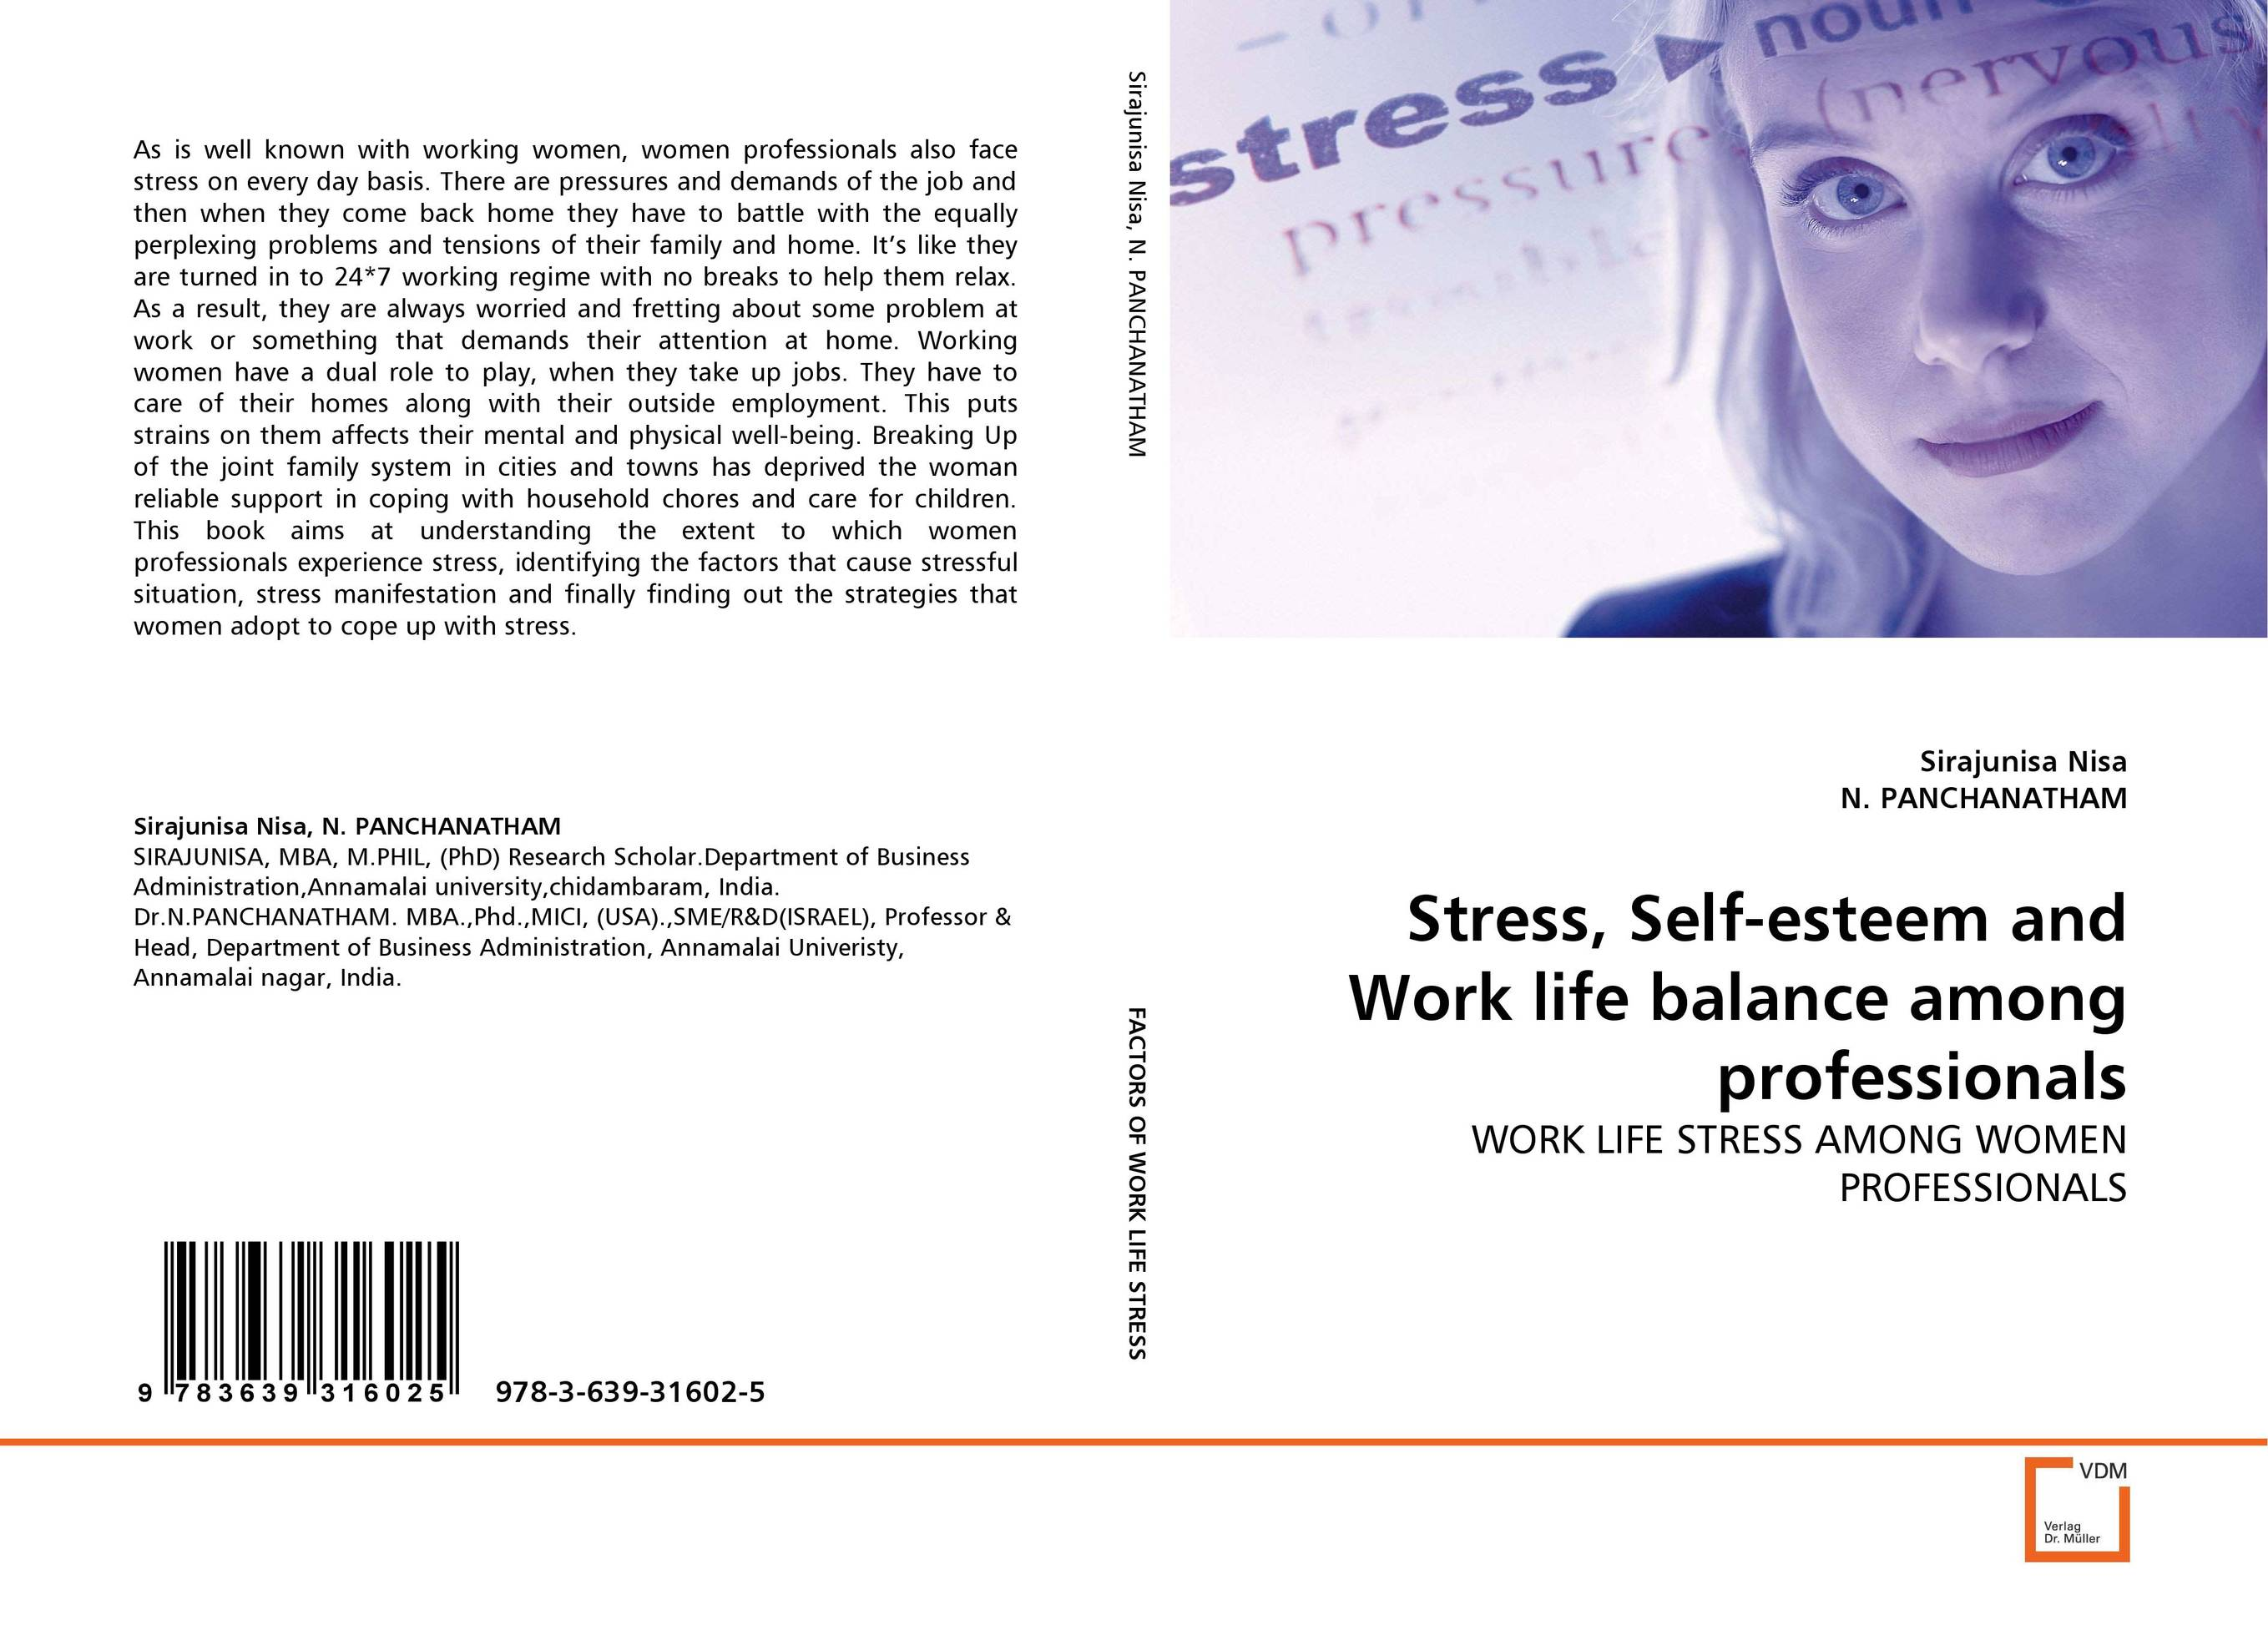 Stress, Self-esteem and Work life balance among professionals seeing things as they are